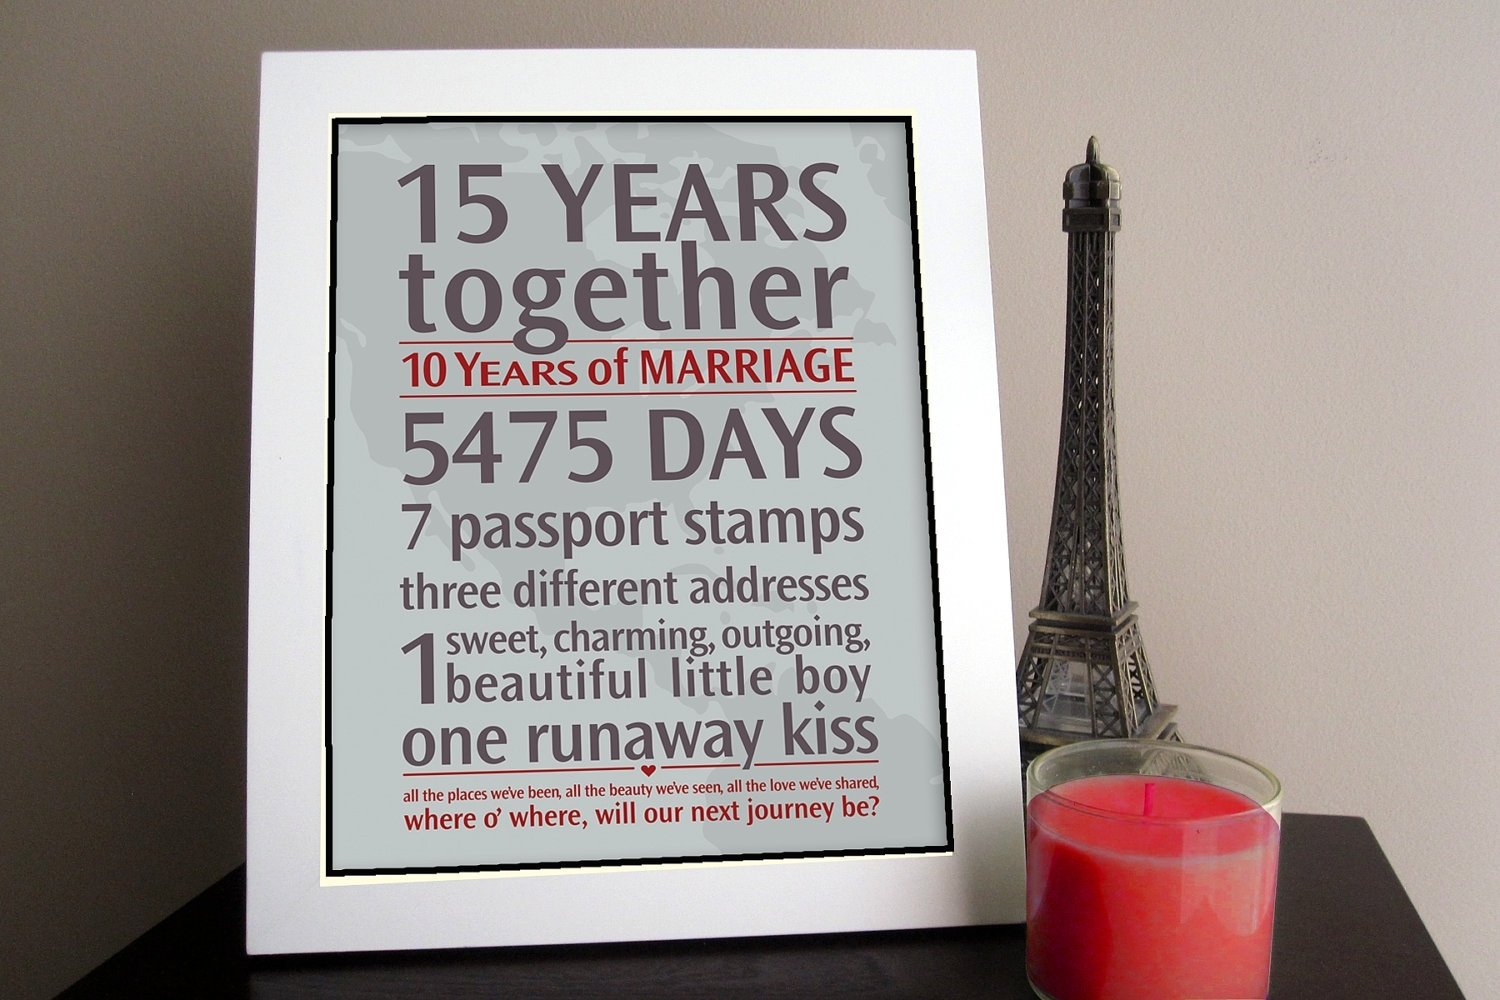 10 Attractive Gift Ideas For Parents Anniversary top 15 words memorable ideas for wedding anniversary gifts 10 2021